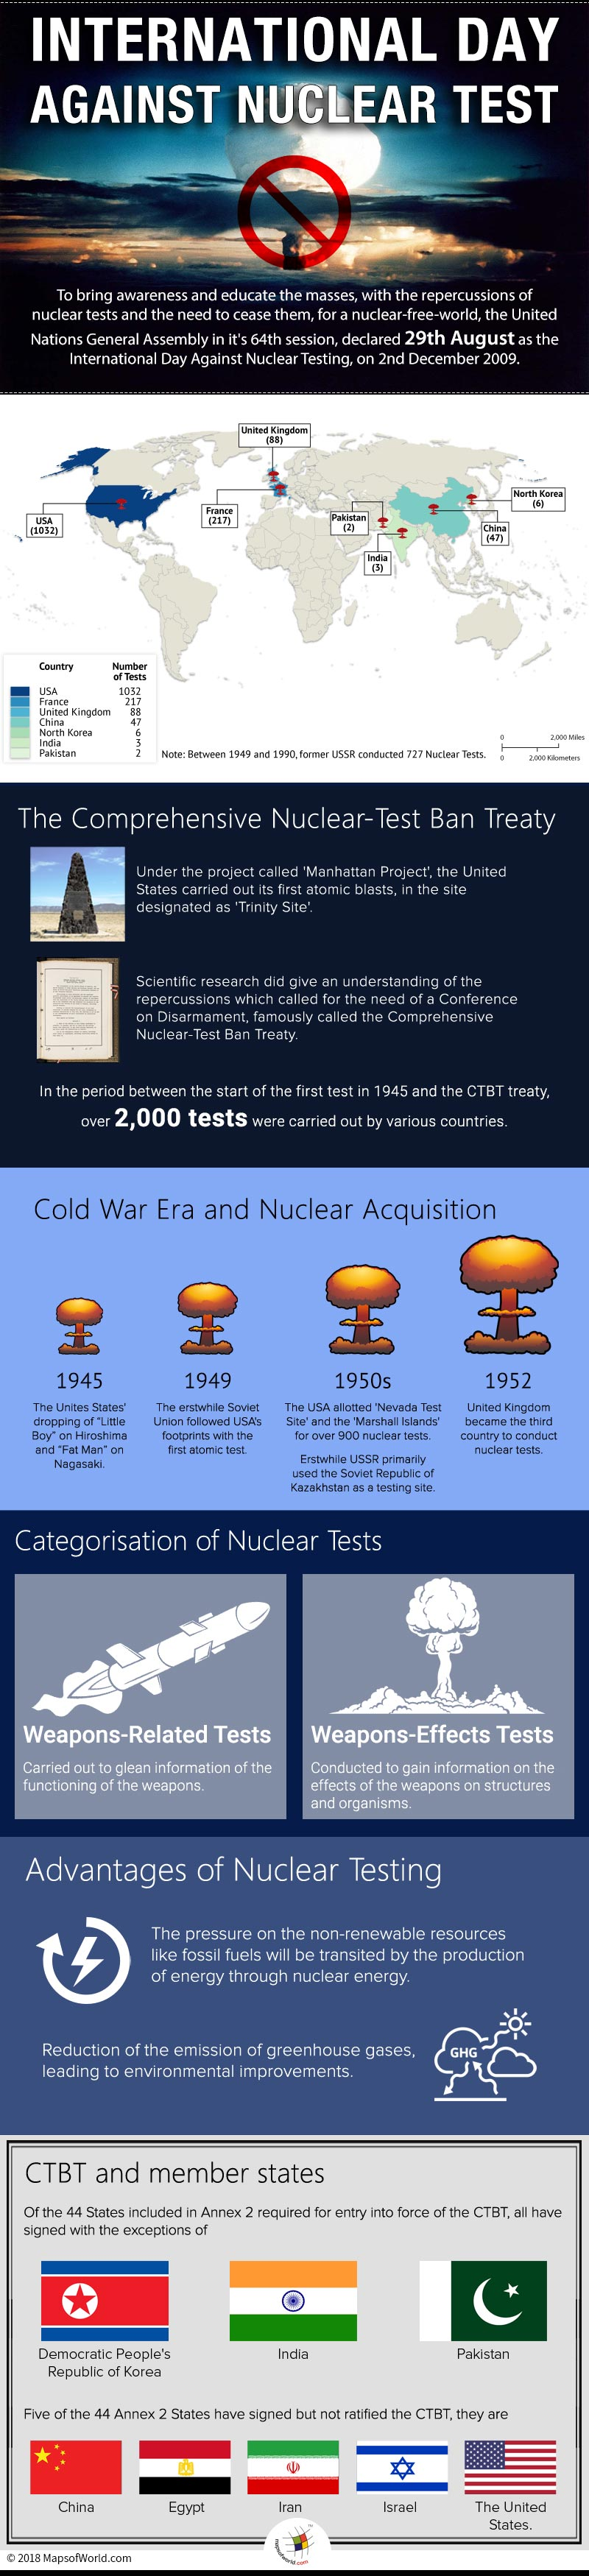 Infographic depicting the history of Nuclear tests.